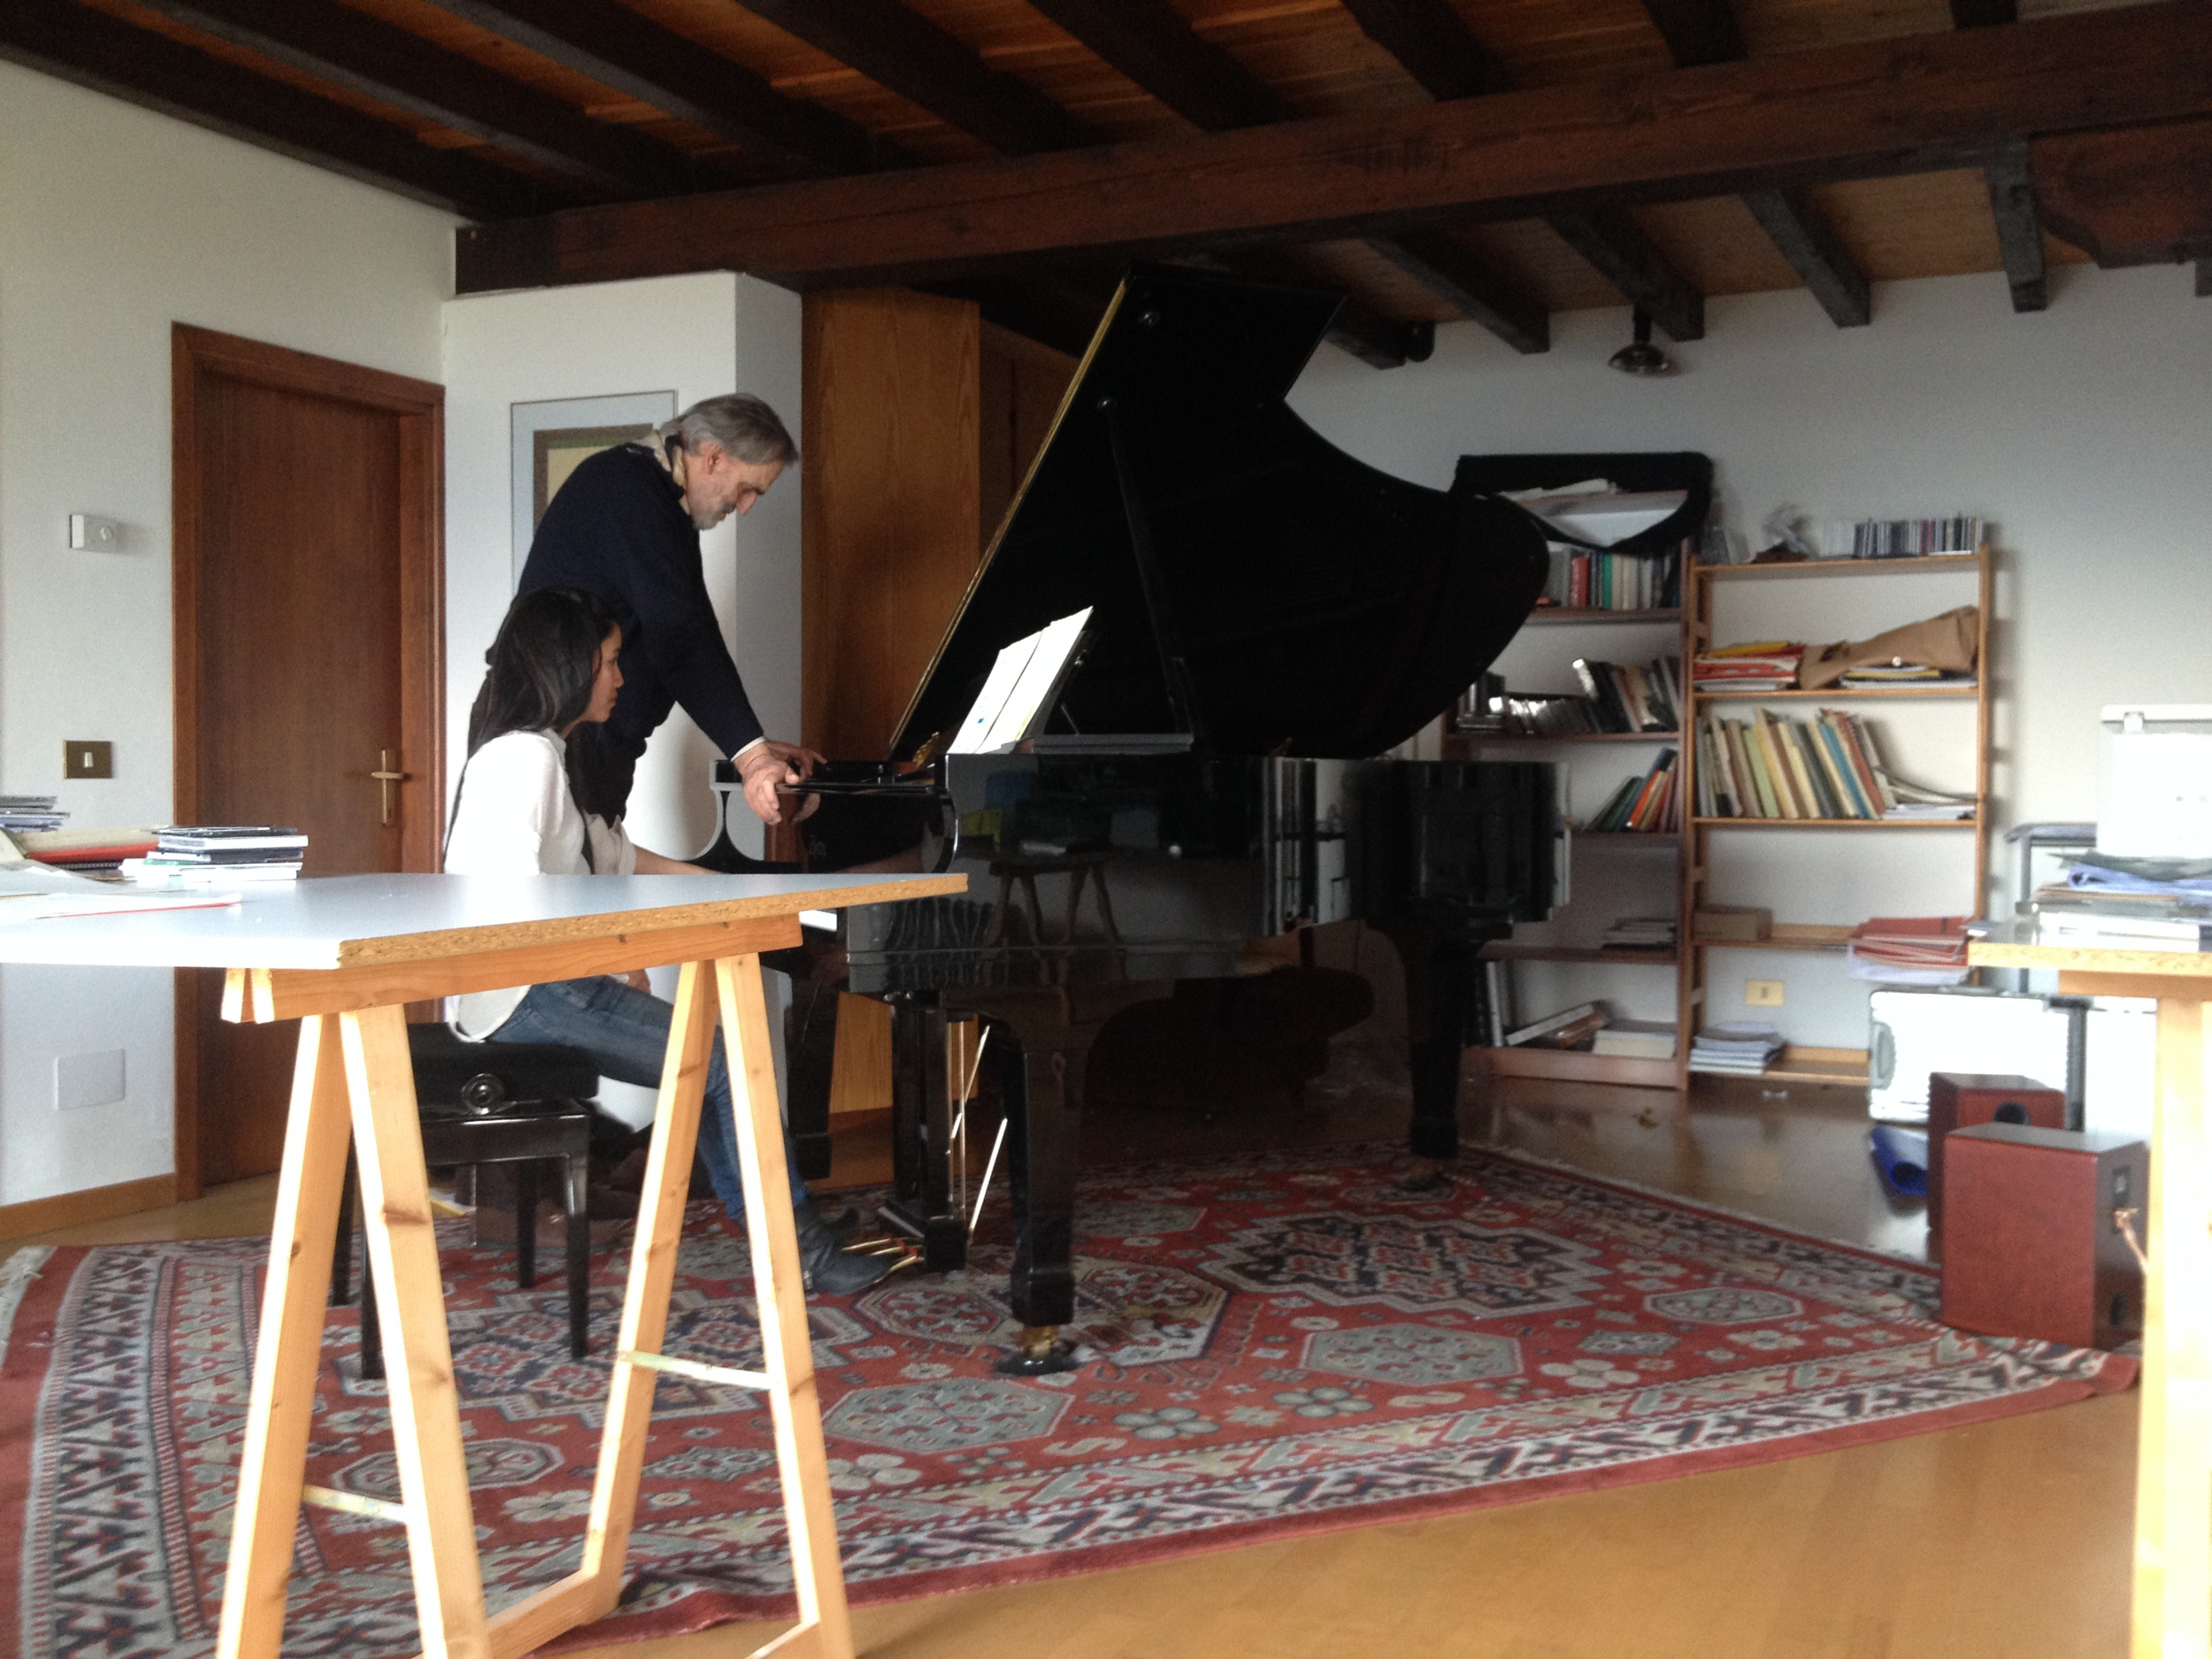 working with Helmut Lachenmann on SerYnade, april 2015